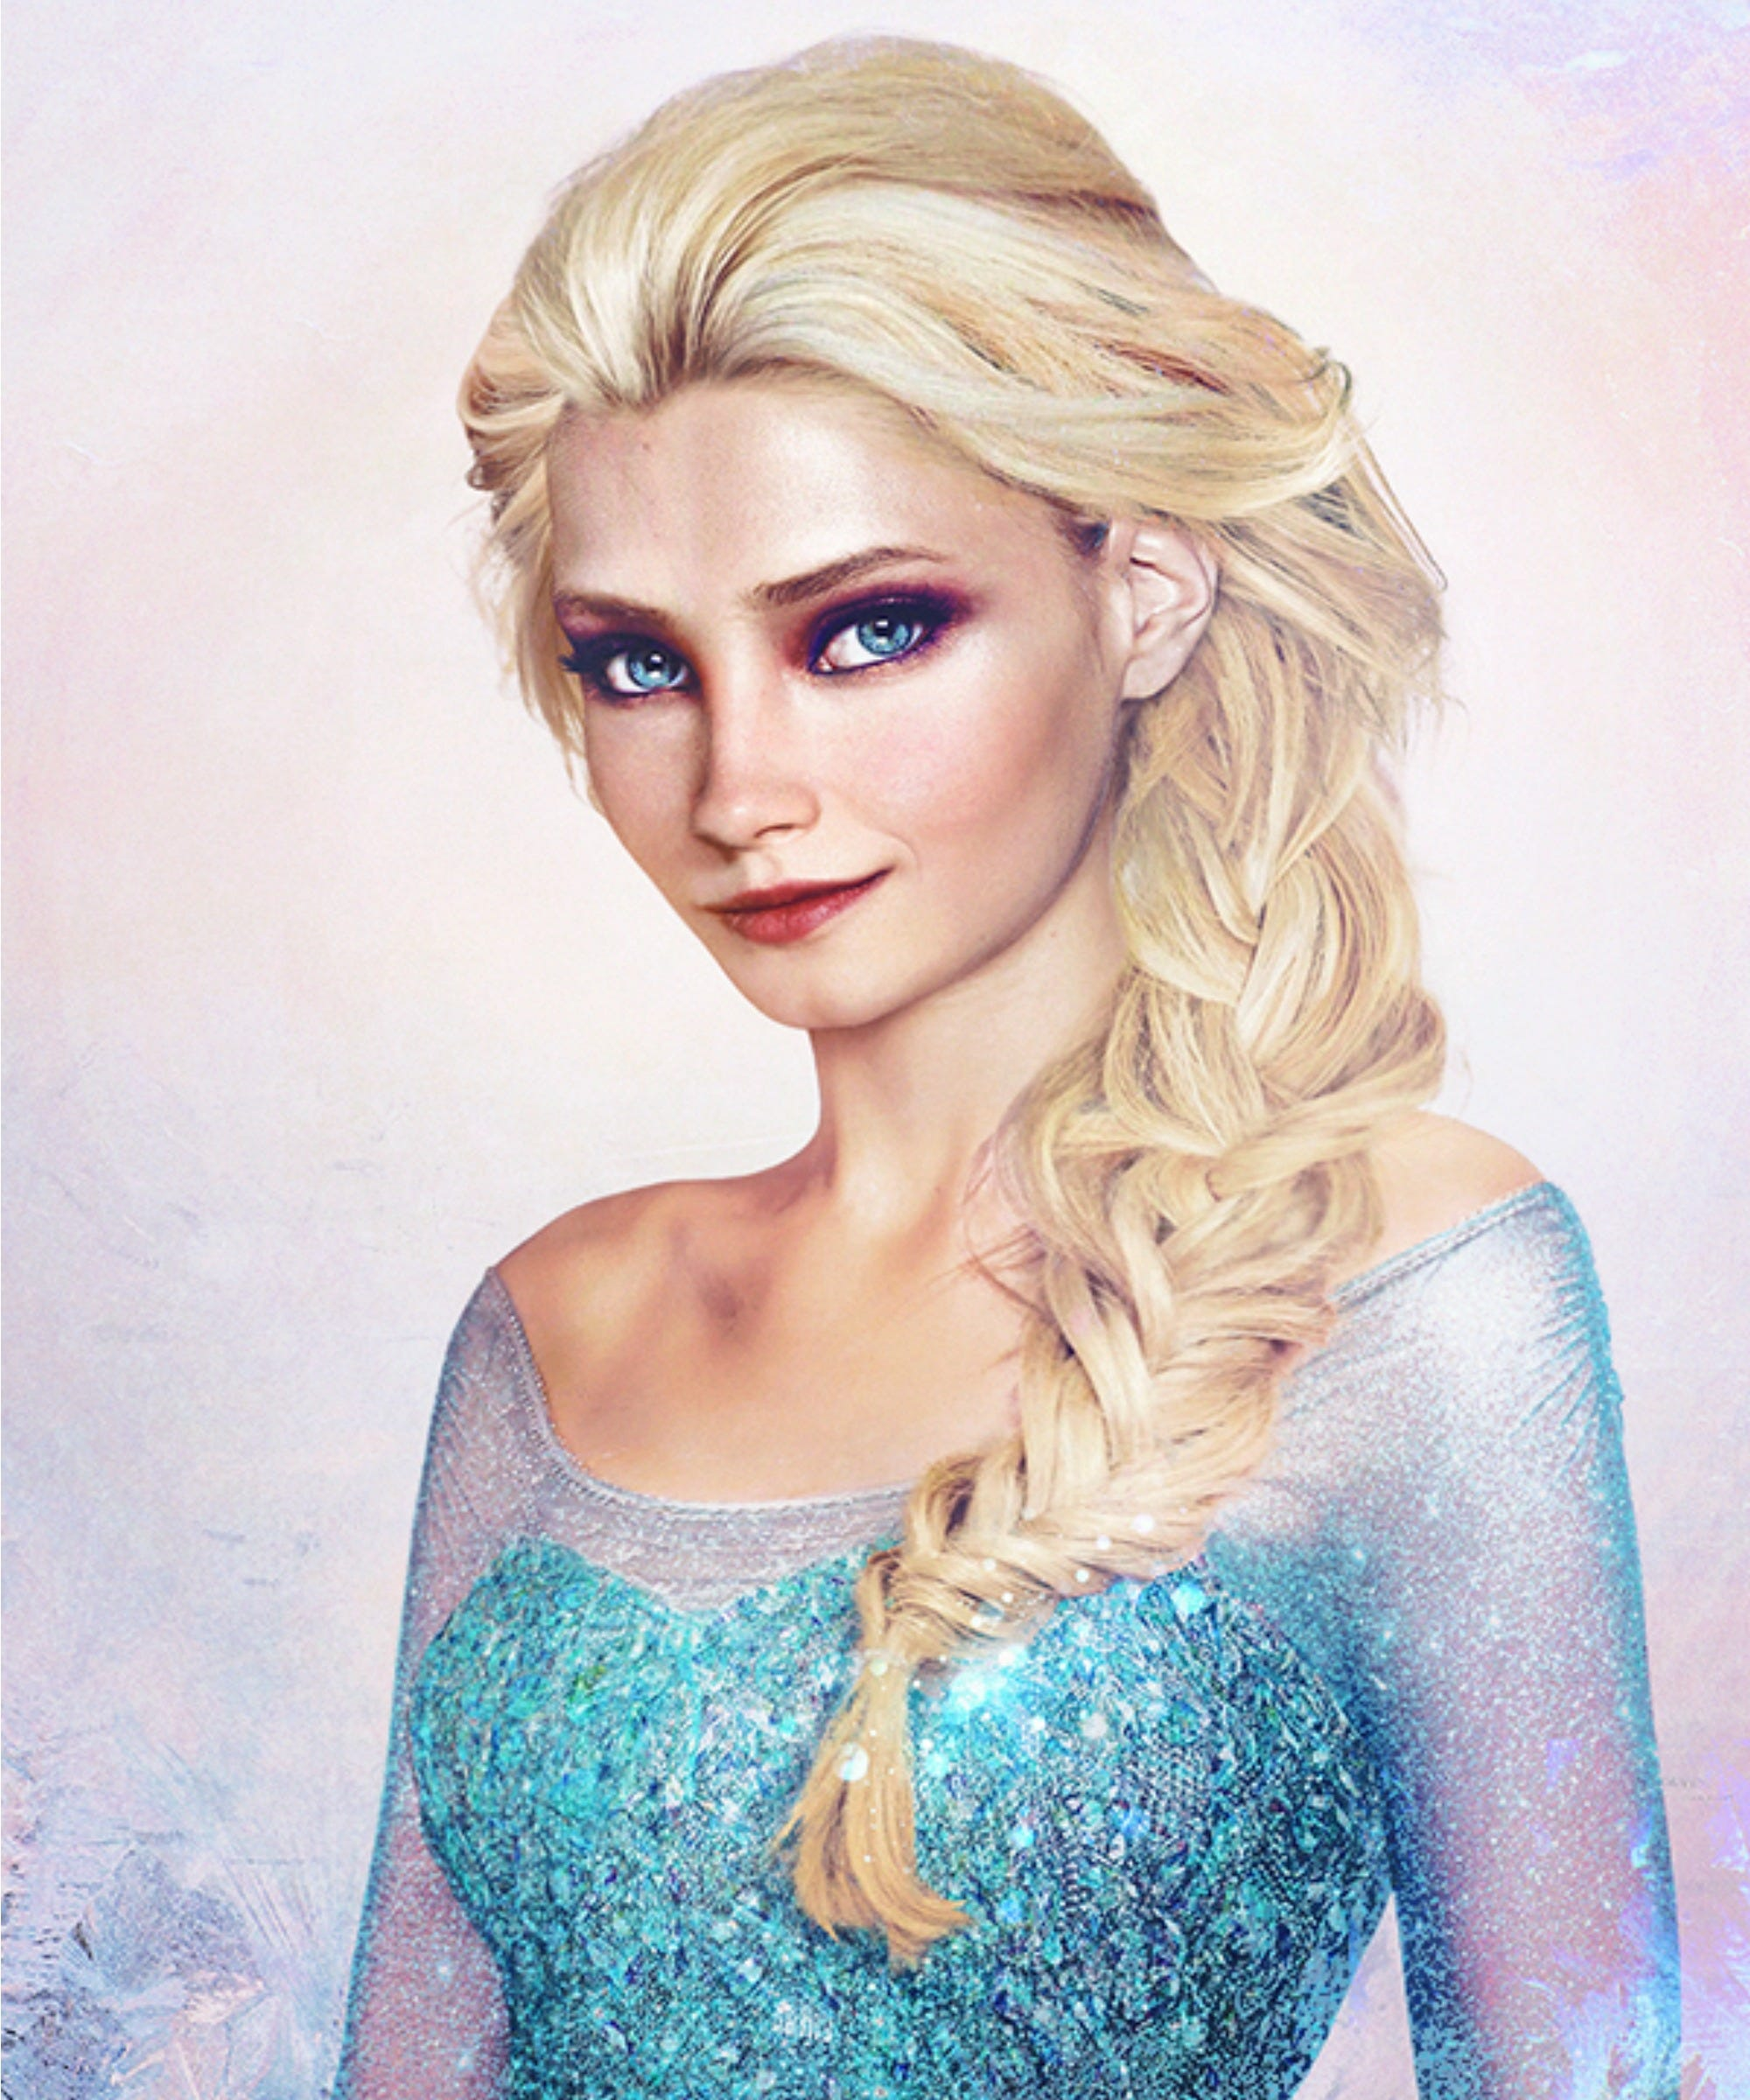 D_elsa_frozen_MAIN